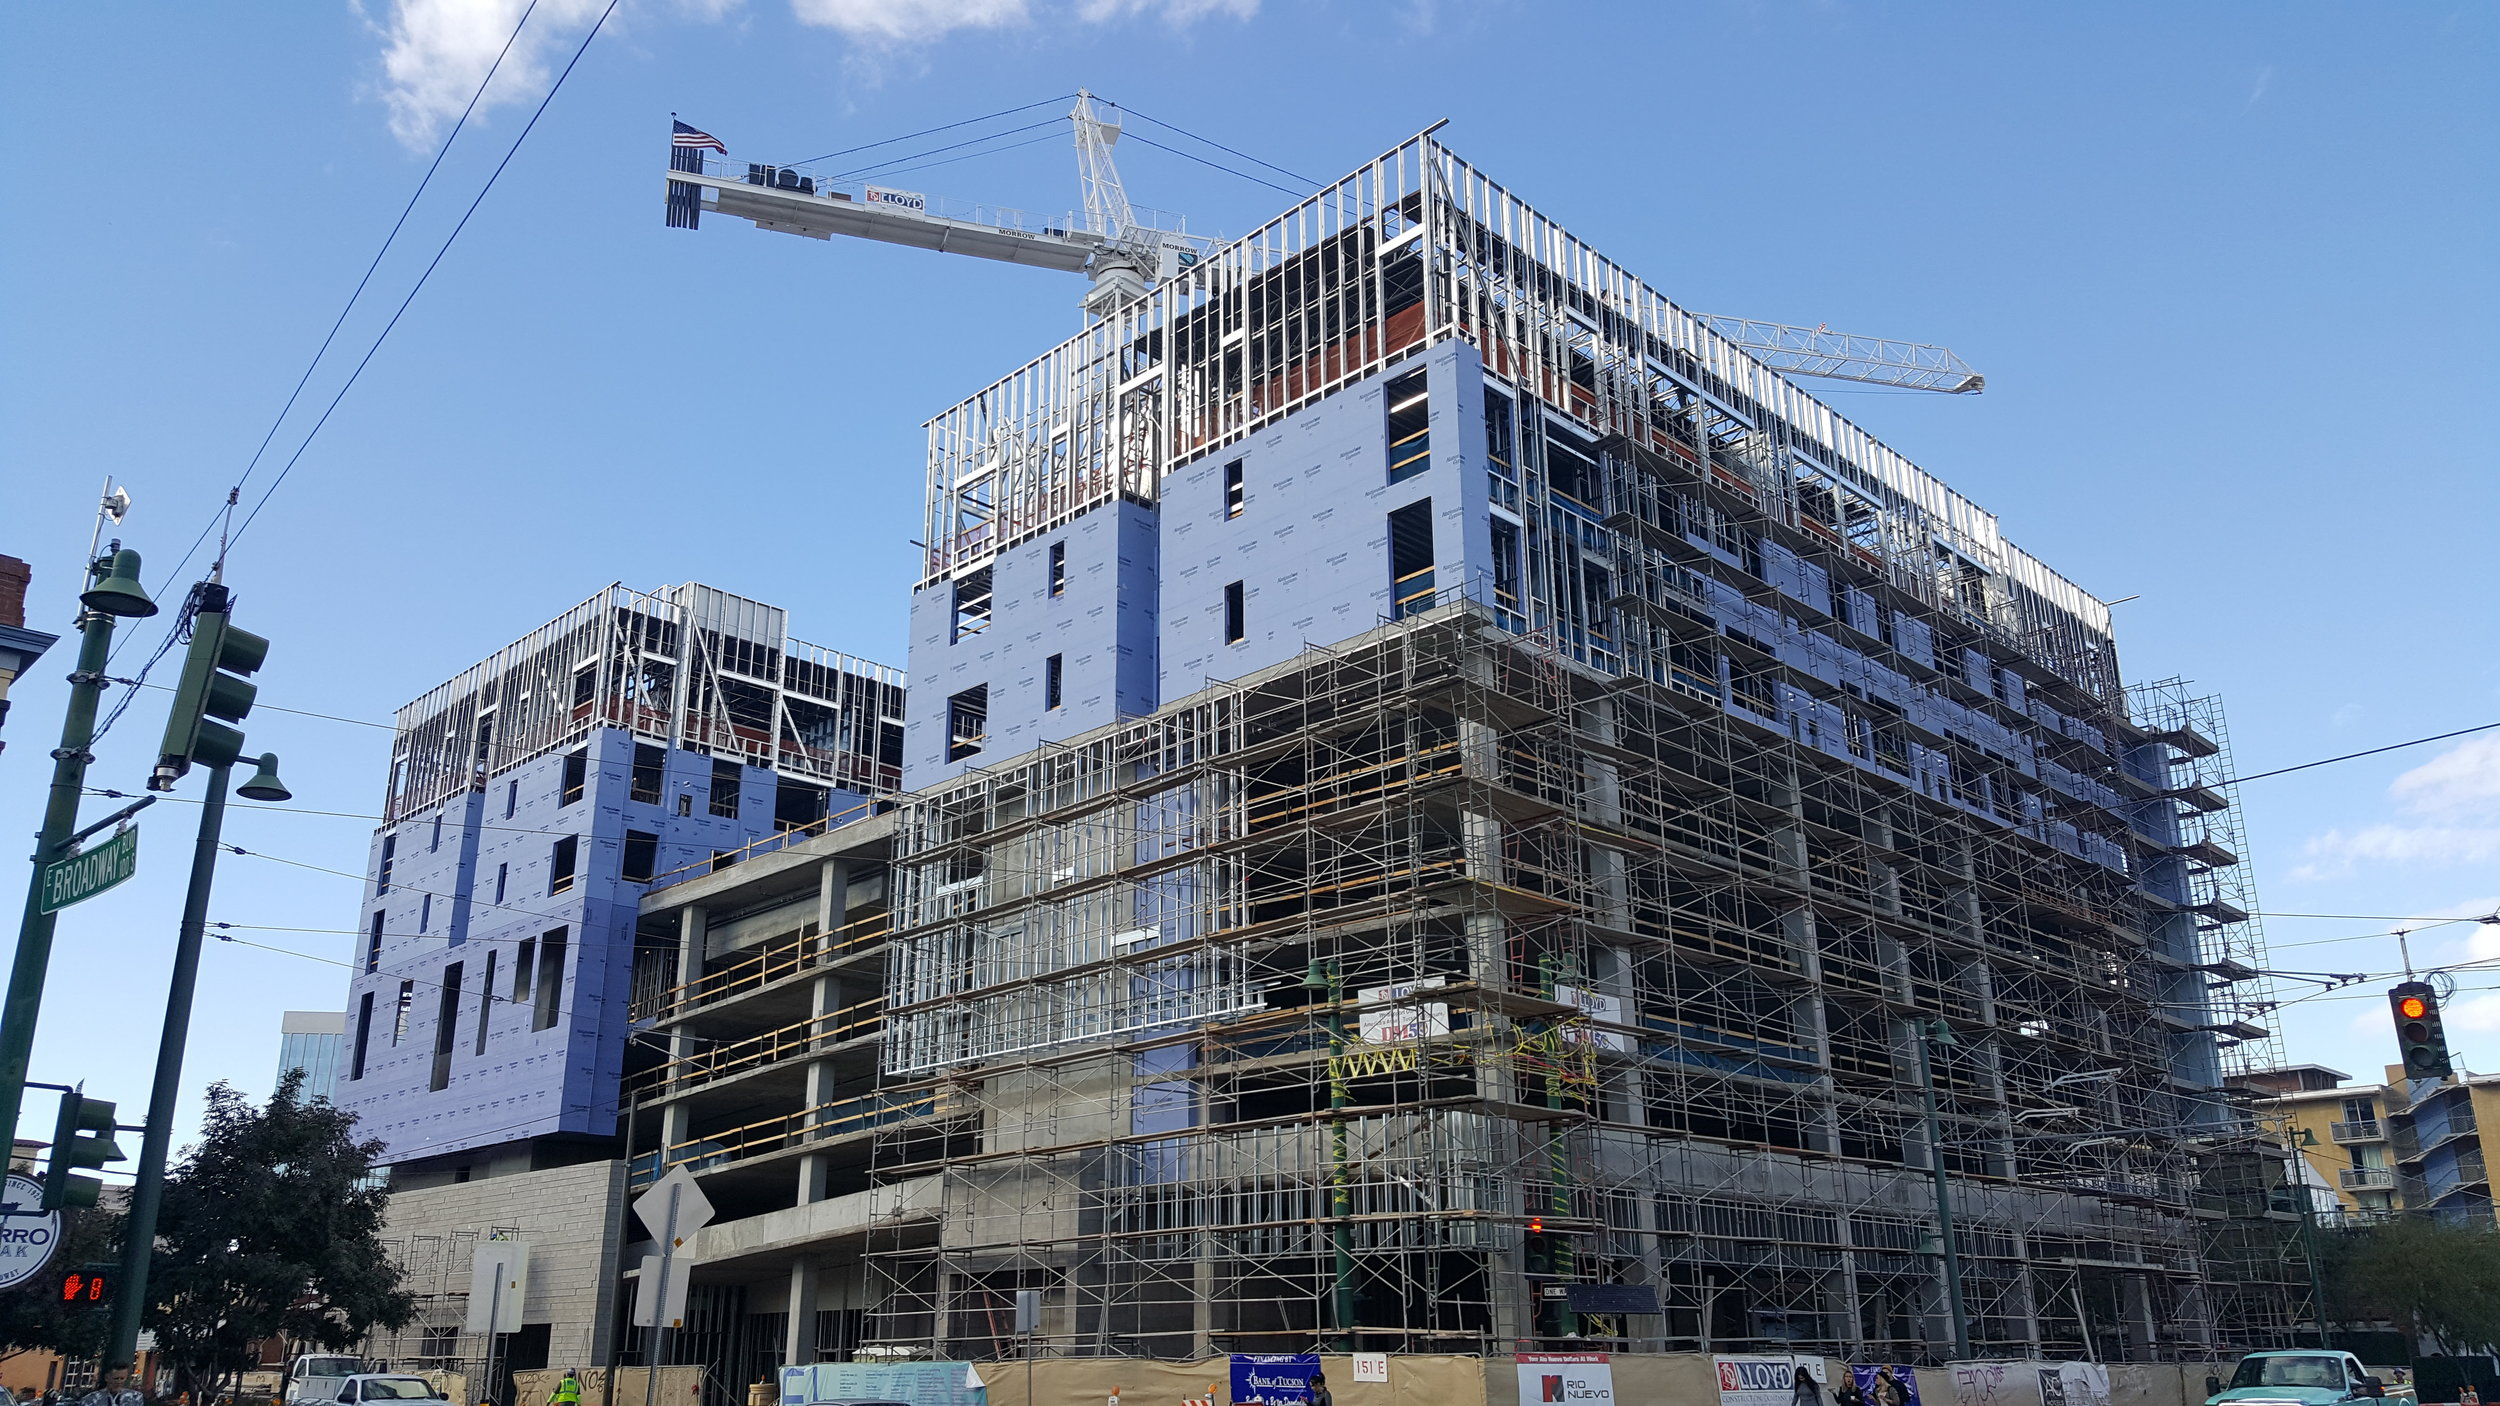 Marriott Hotel Downtown Tucson General Contractor: Lloyd Construction Mechanical